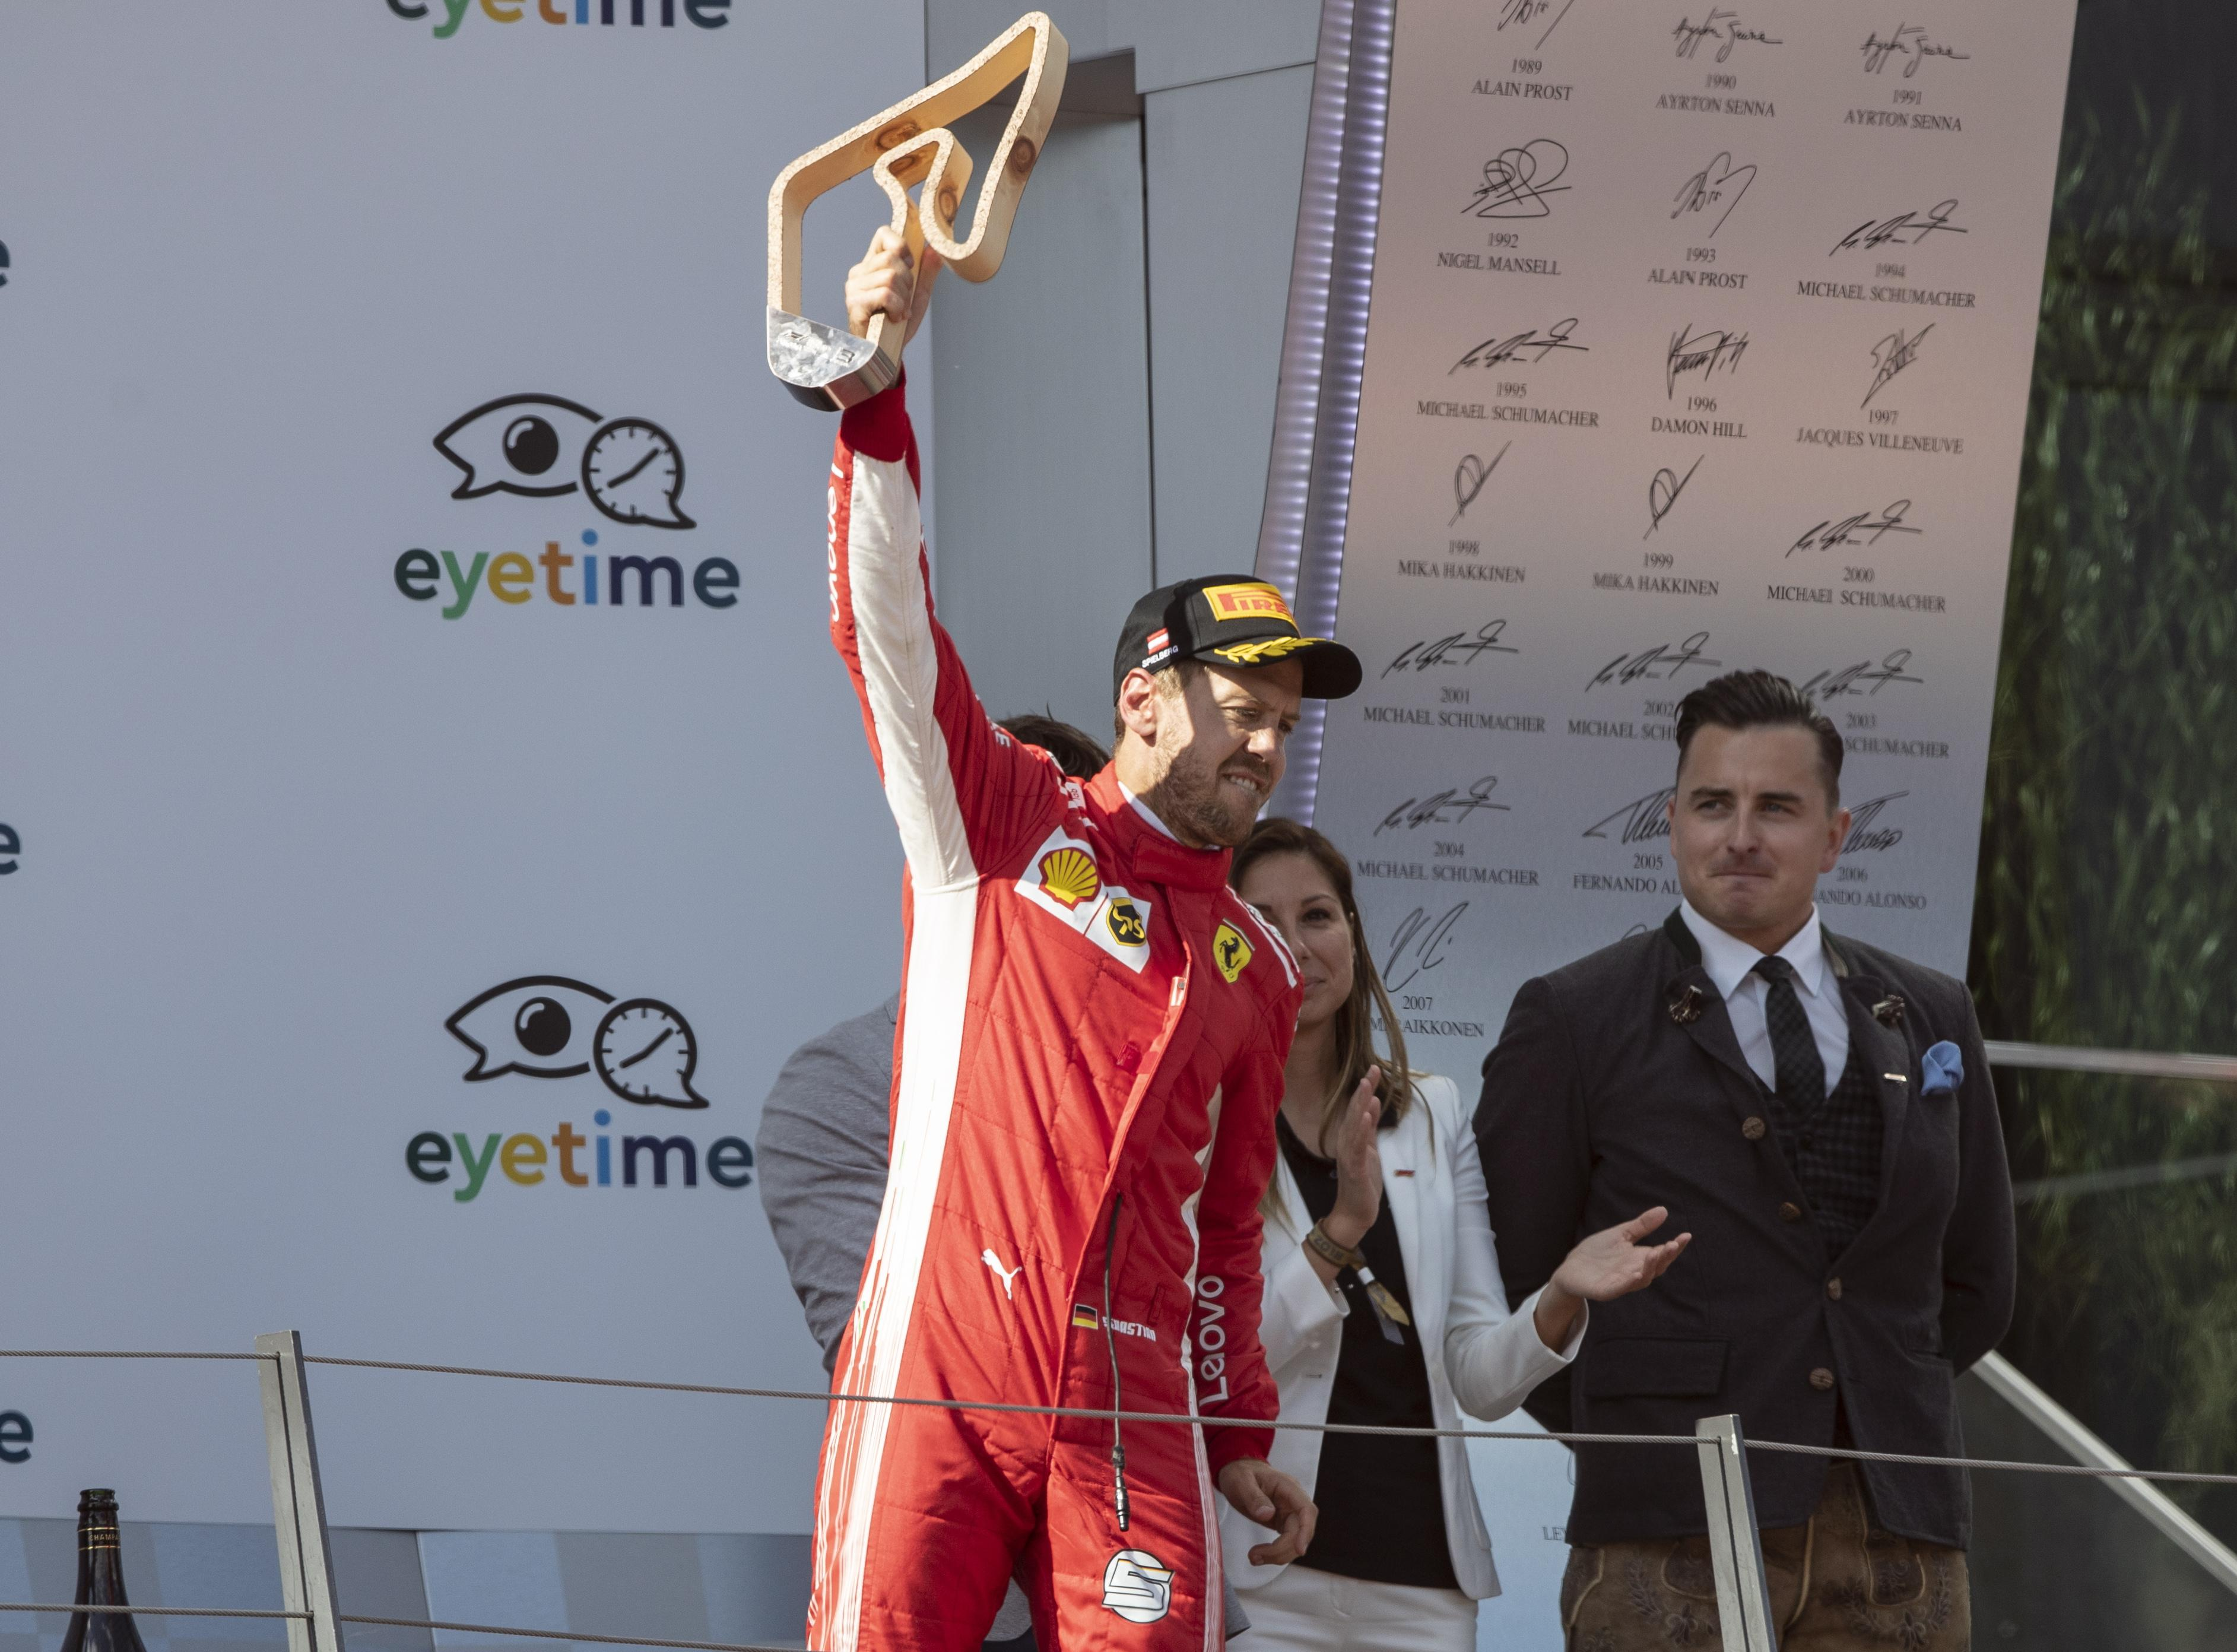 Sebastian Vettel's third-place finish in Austria saw him move into the lead in the Drivers Standings